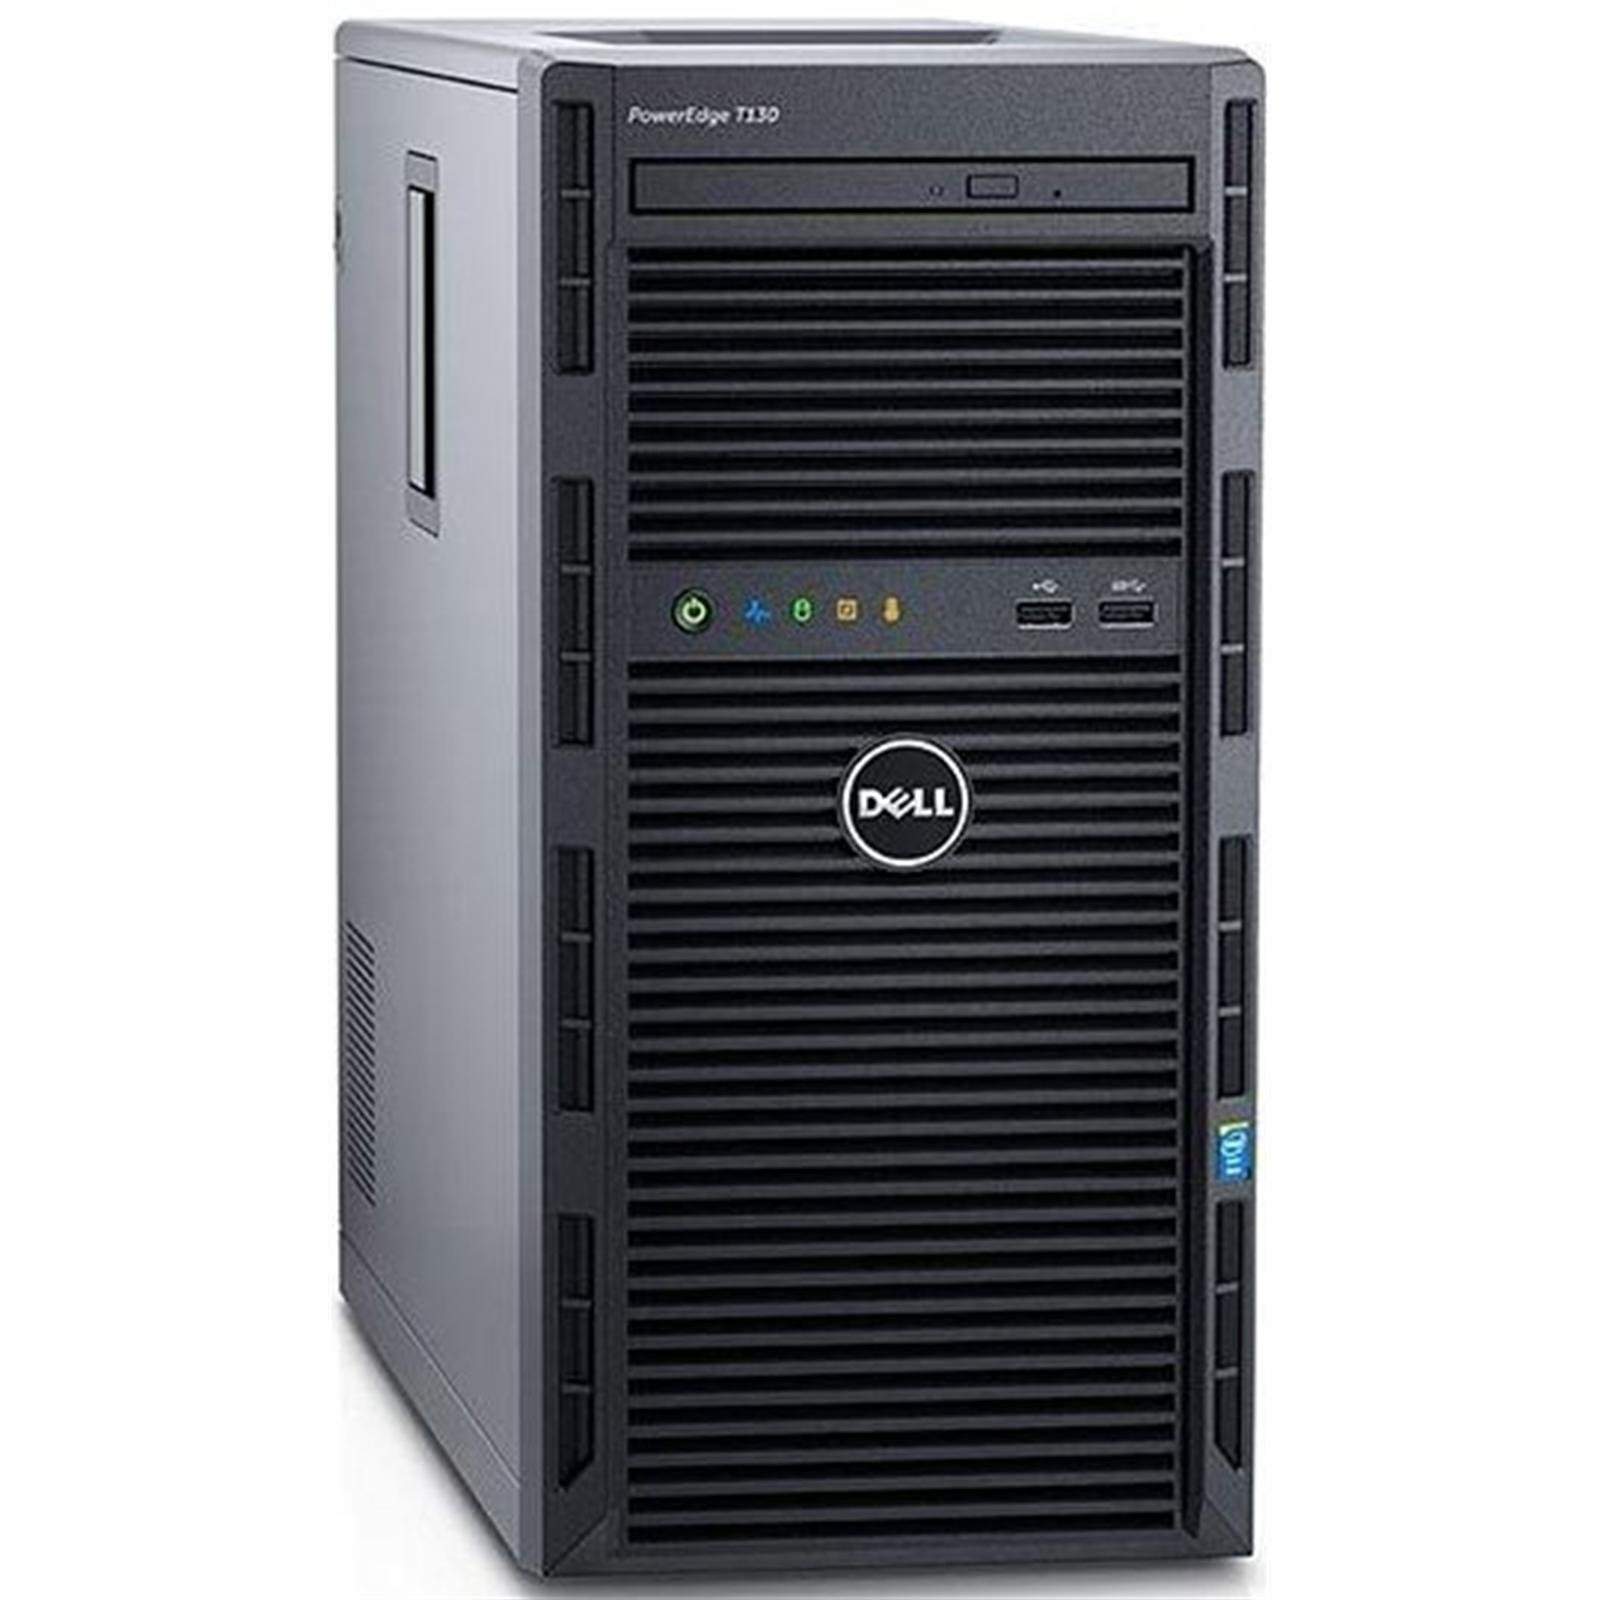 Dell PowerEdge T130 Quad-Core 3.6GHz 4GB RAM 2TB HDD(Certified Refurbished) by Dell